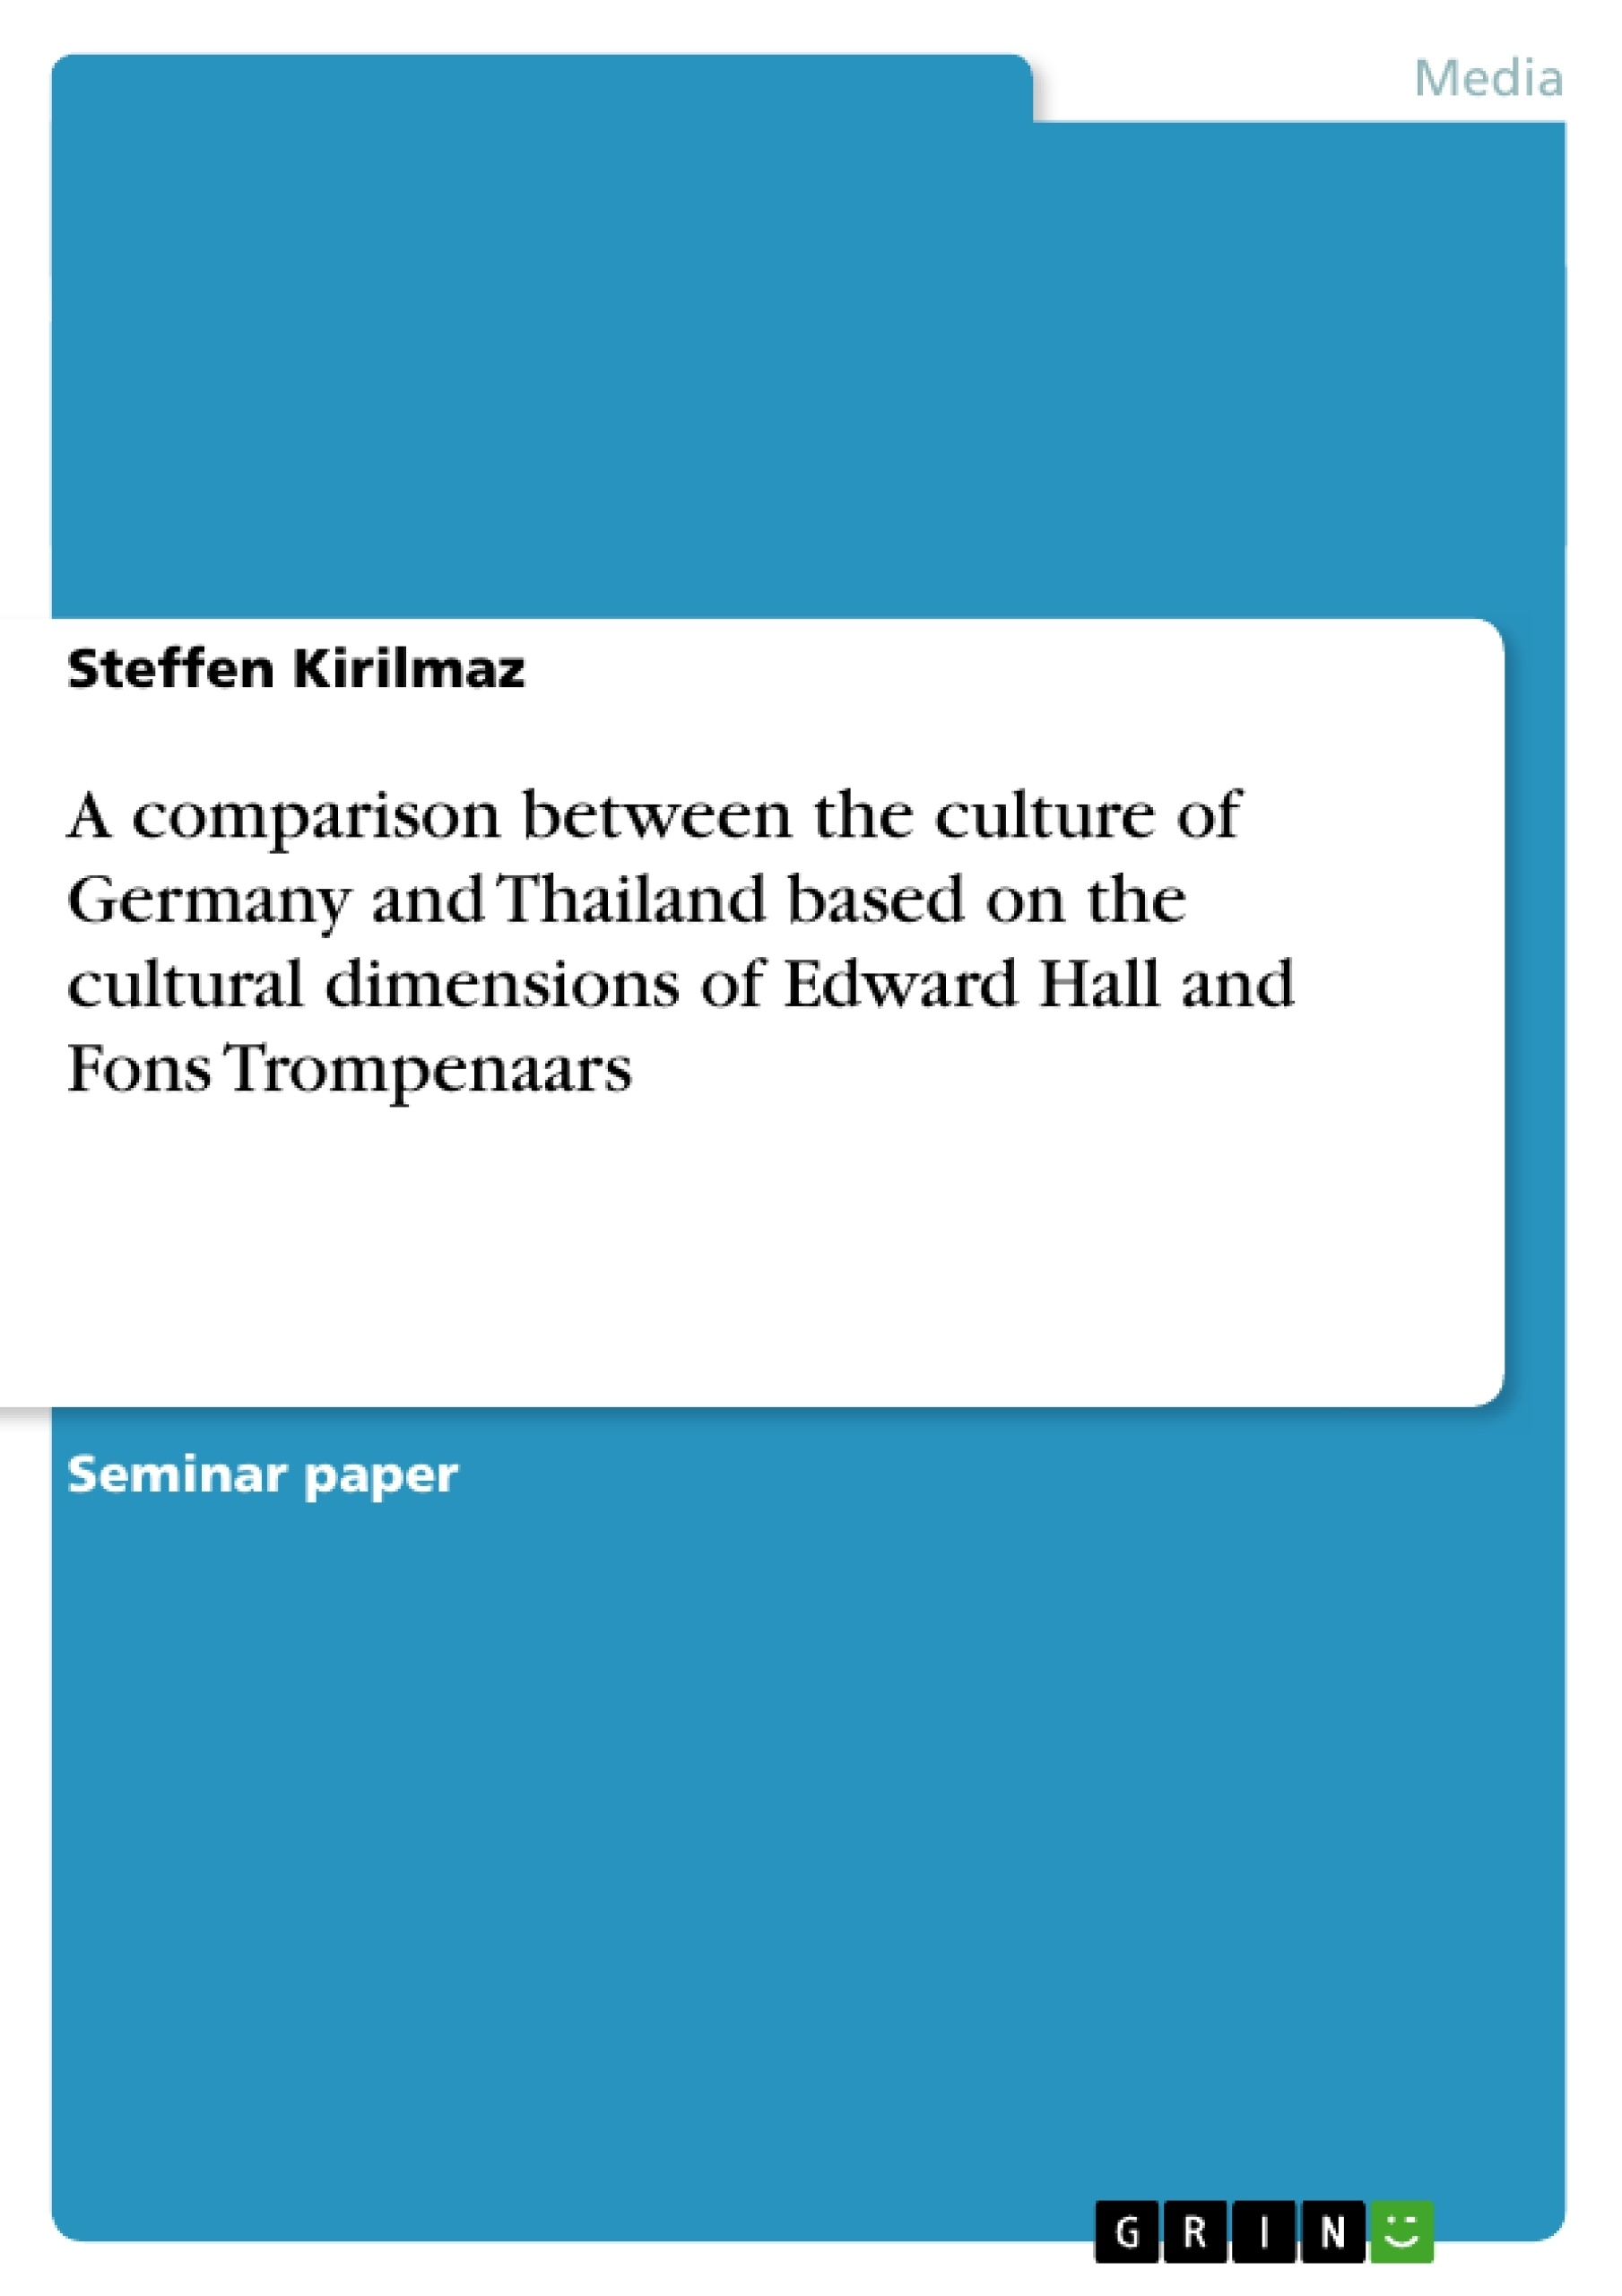 Title: A comparison between the culture of Germany and Thailand based on the cultural dimensions of Edward Hall and Fons Trompenaars